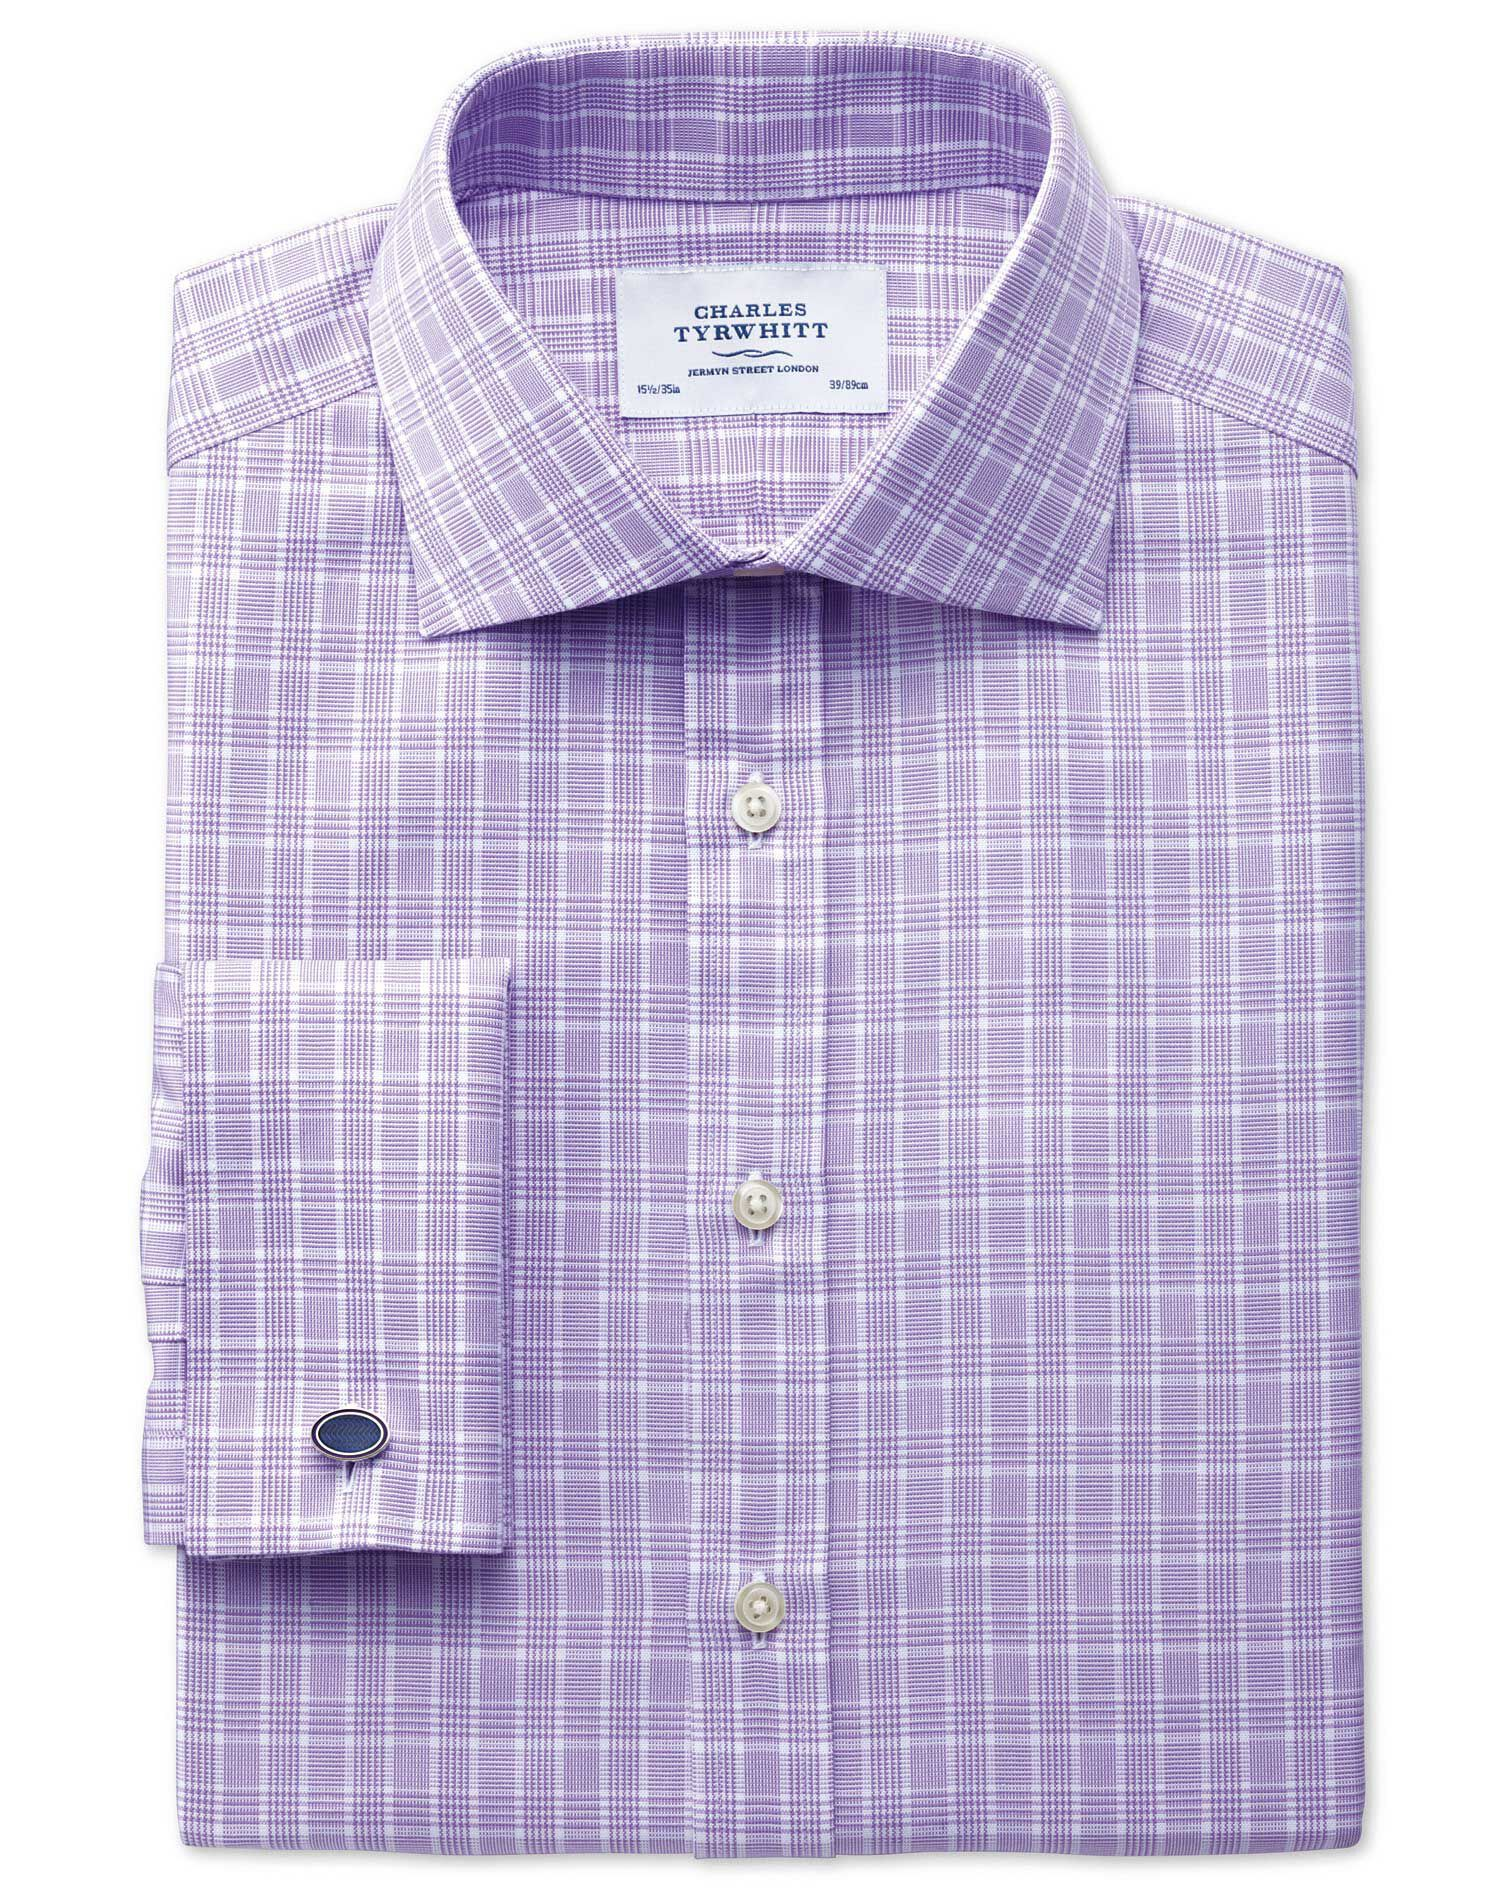 Slim Fit Prince Of Wales Basketweave Lilac Cotton Formal Shirt Single Cuff Size 16.5/38 by Charles T